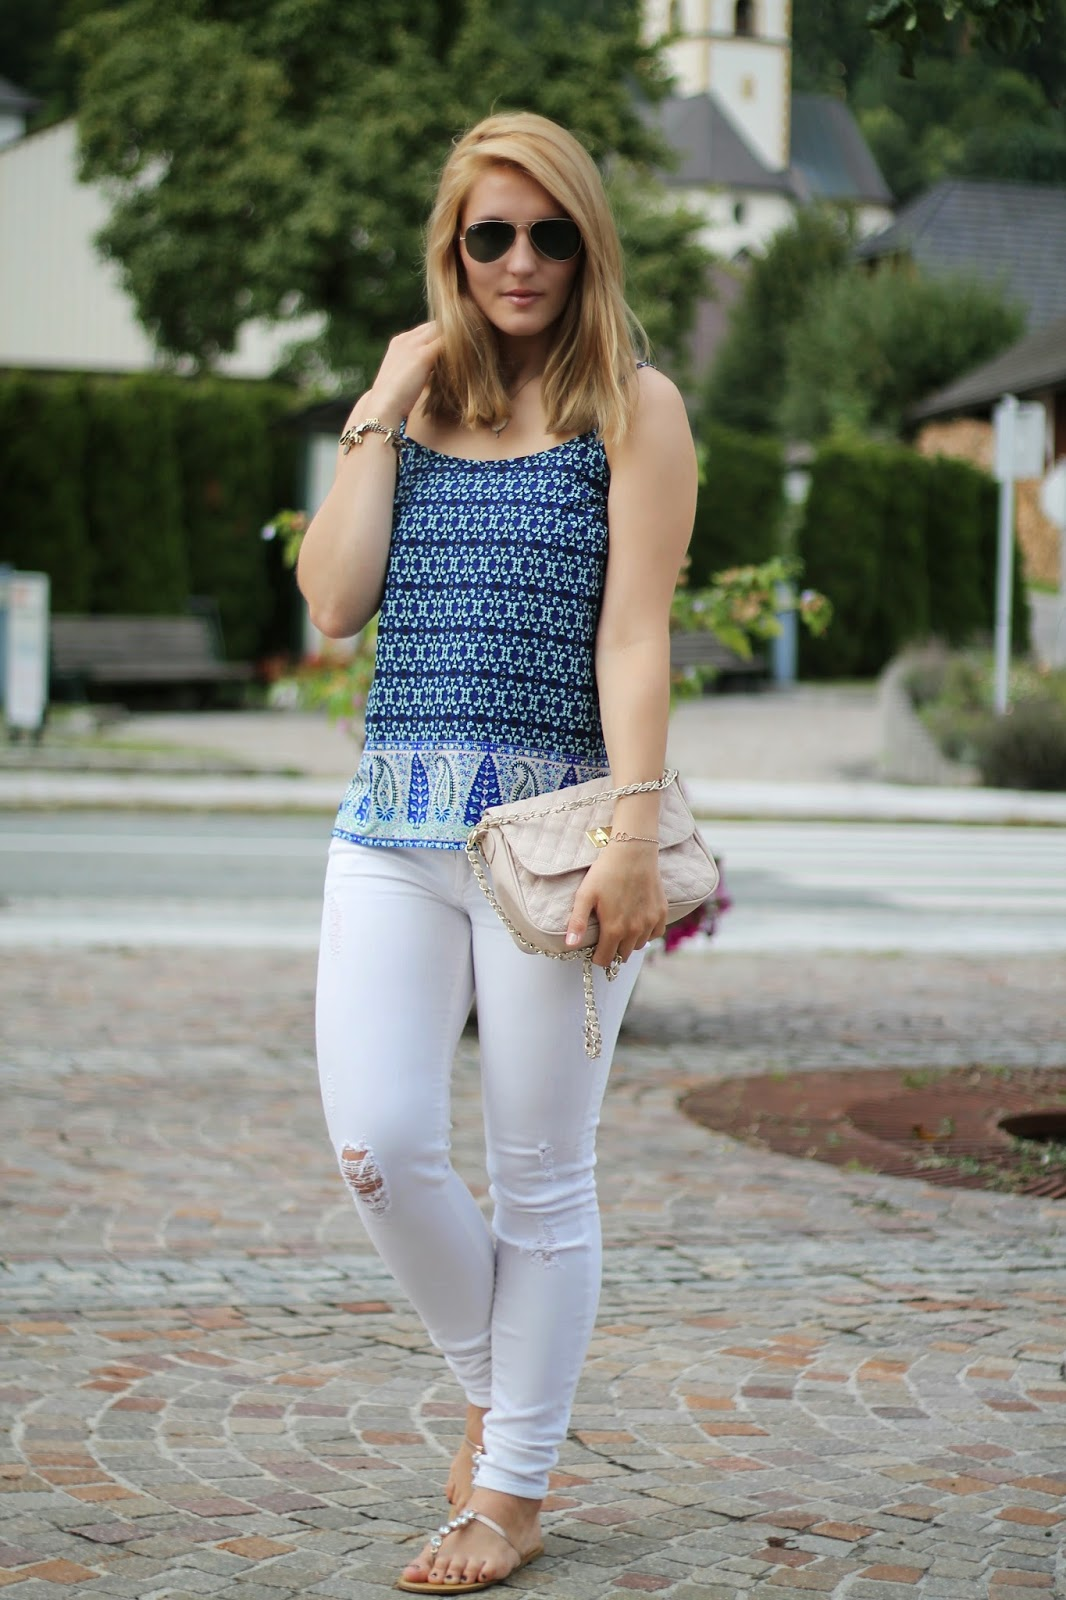 Fashionblogger Austria / Österreich / Deutsch / German / Kärnten / Carinthia / Klagenfurt / Köttmannsdorf / Spring Look / Classy / Edgy / Summer / Summer Style 2014 / Summer Look / Fashionista Look /   / Summer Look / Mango / Tally Weijl / Asos / Ray Ban / Primark / Camisole Top / White Jeans / Ray Ban Aviator Sunglasses /